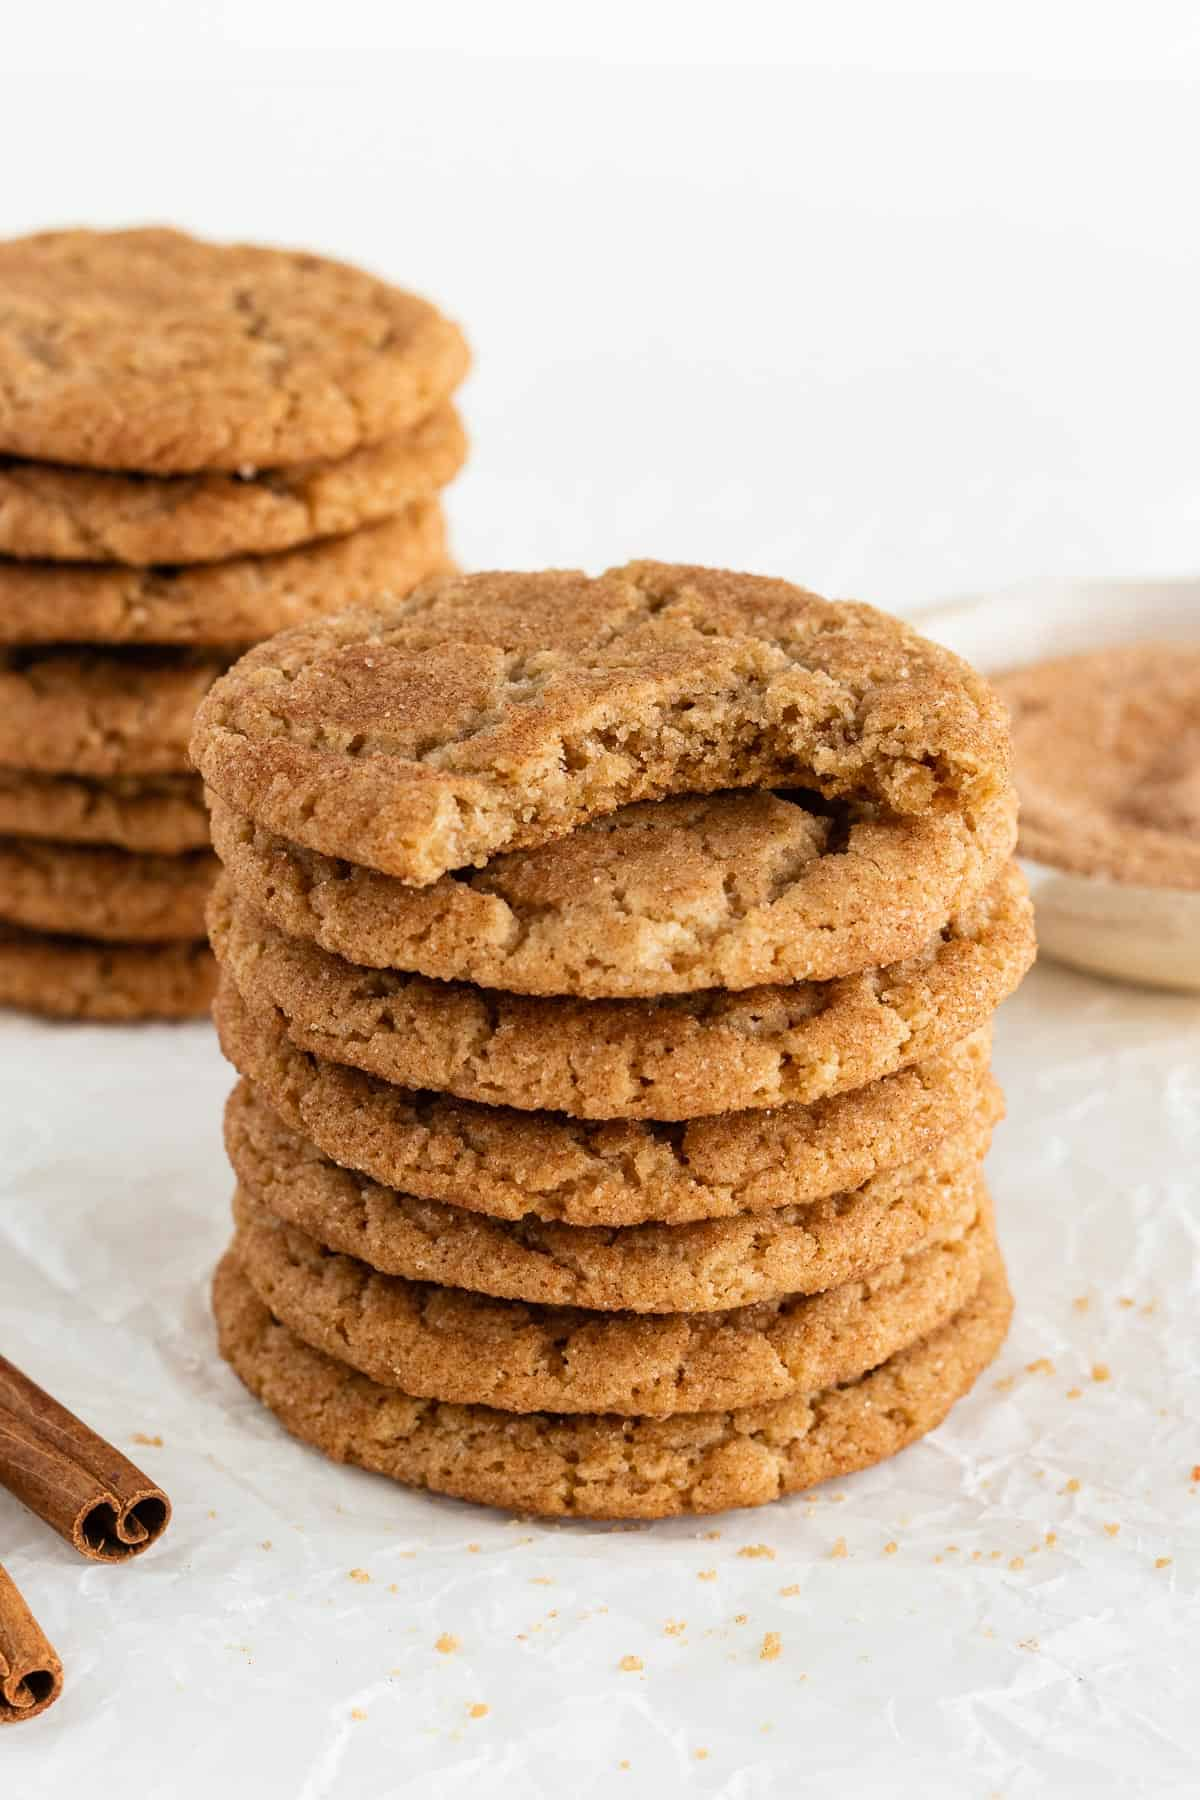 two tall stacks of vegan snickerdoodle cookies with a bite taken out of the top cookie